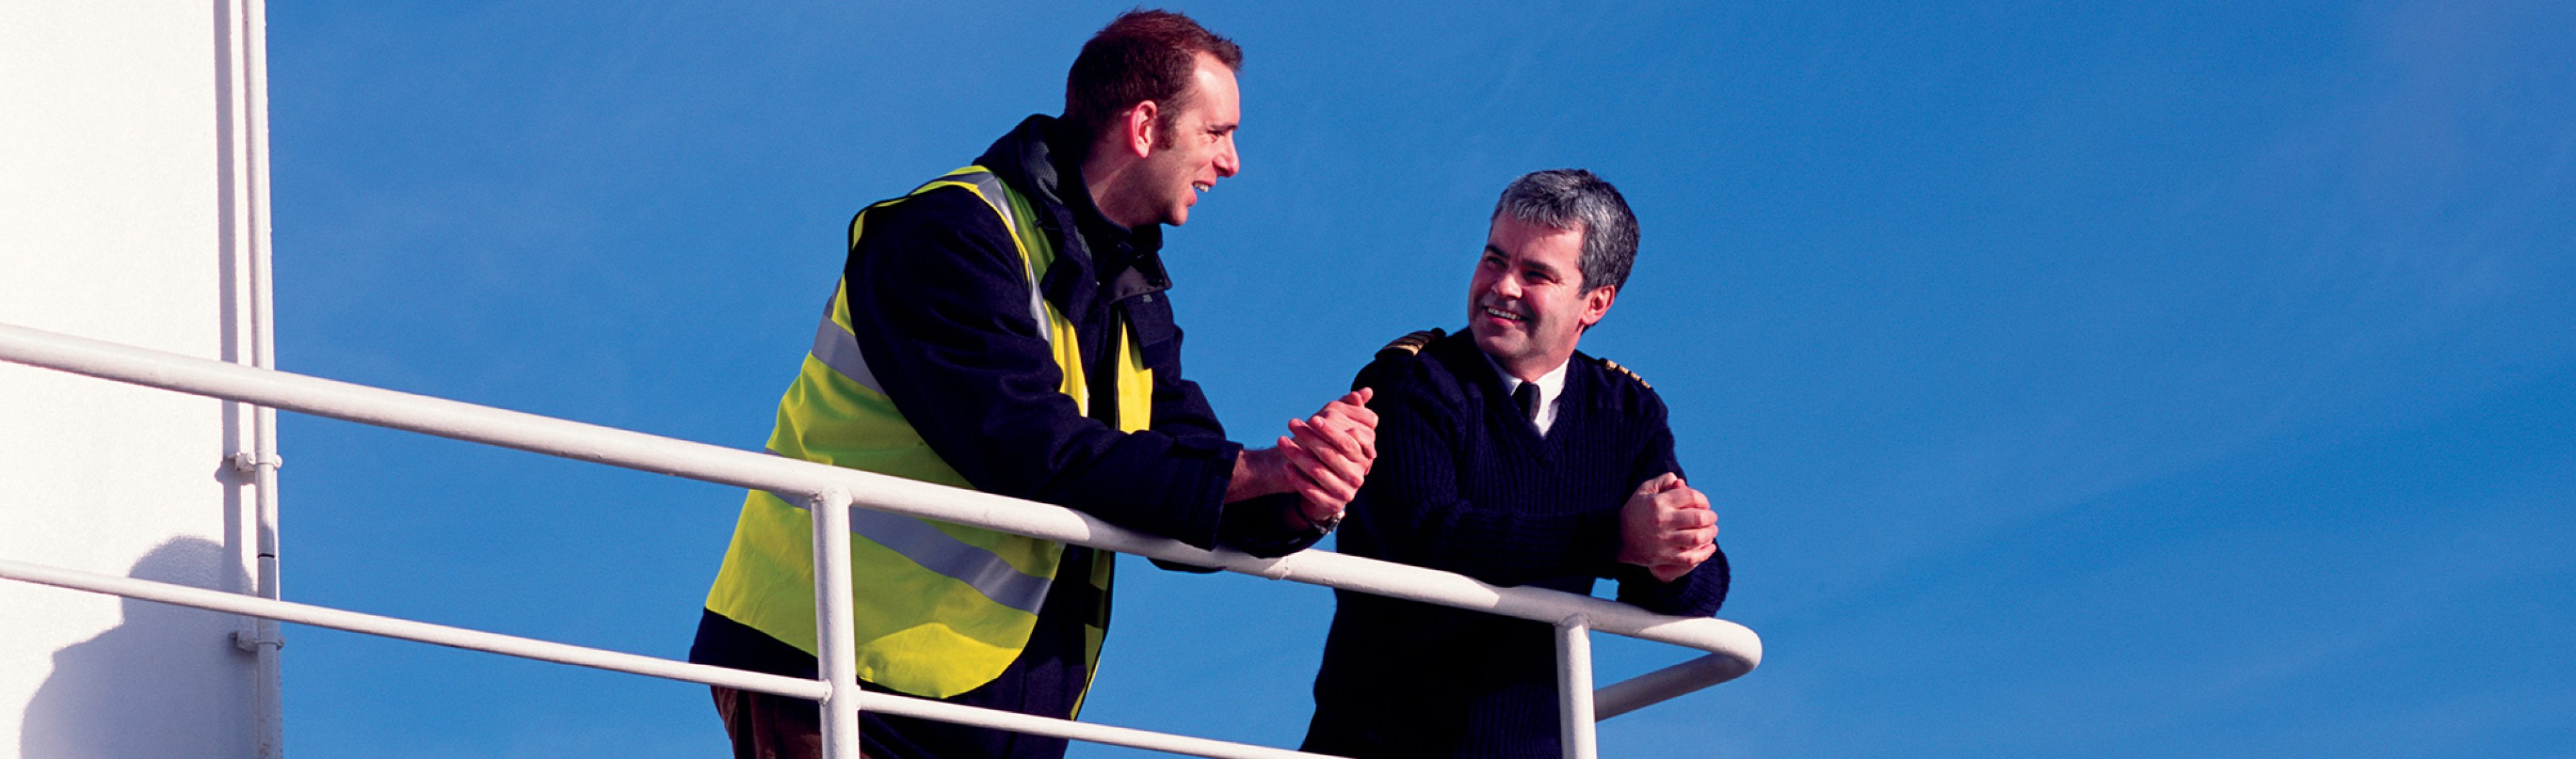 BP Marine Account Manager has a discussion with customer on board a vessel in London, UK.